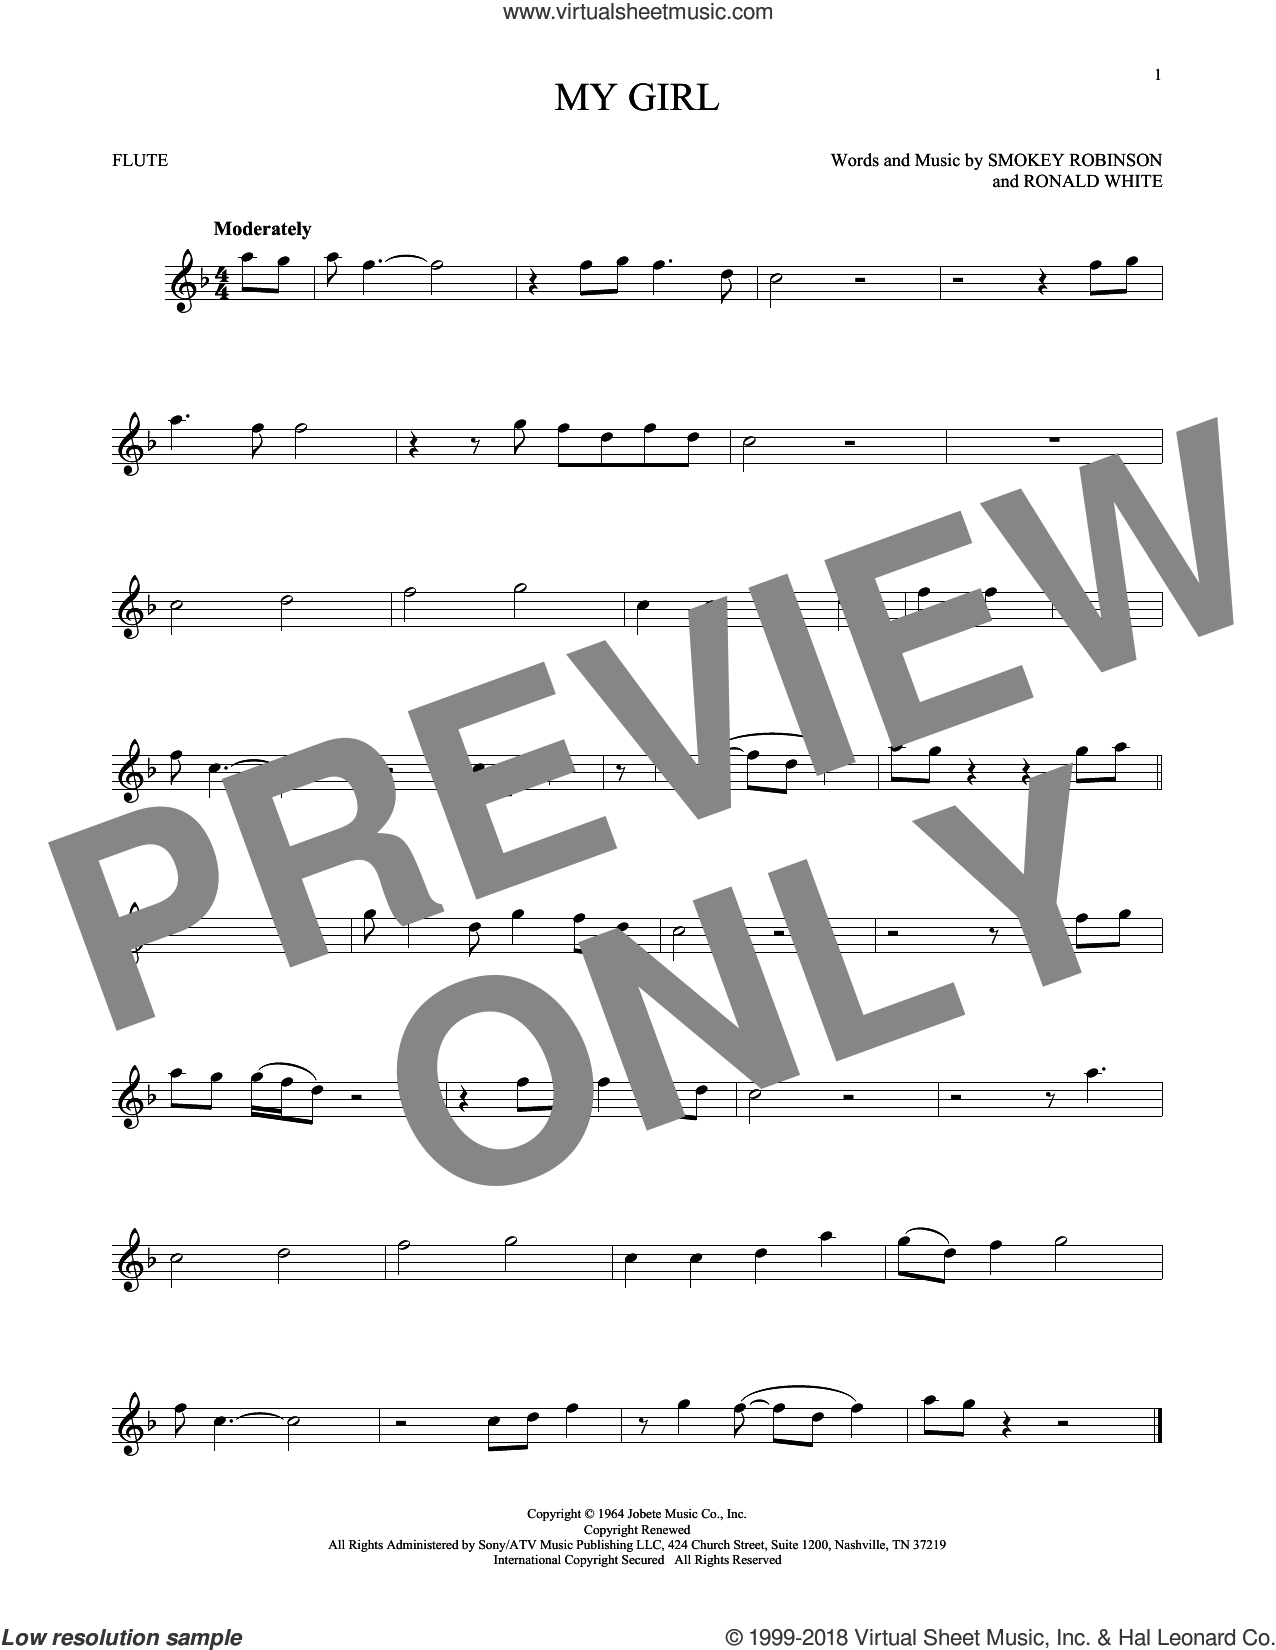 My Girl sheet music for flute solo by The Temptations and Ronald White, intermediate skill level